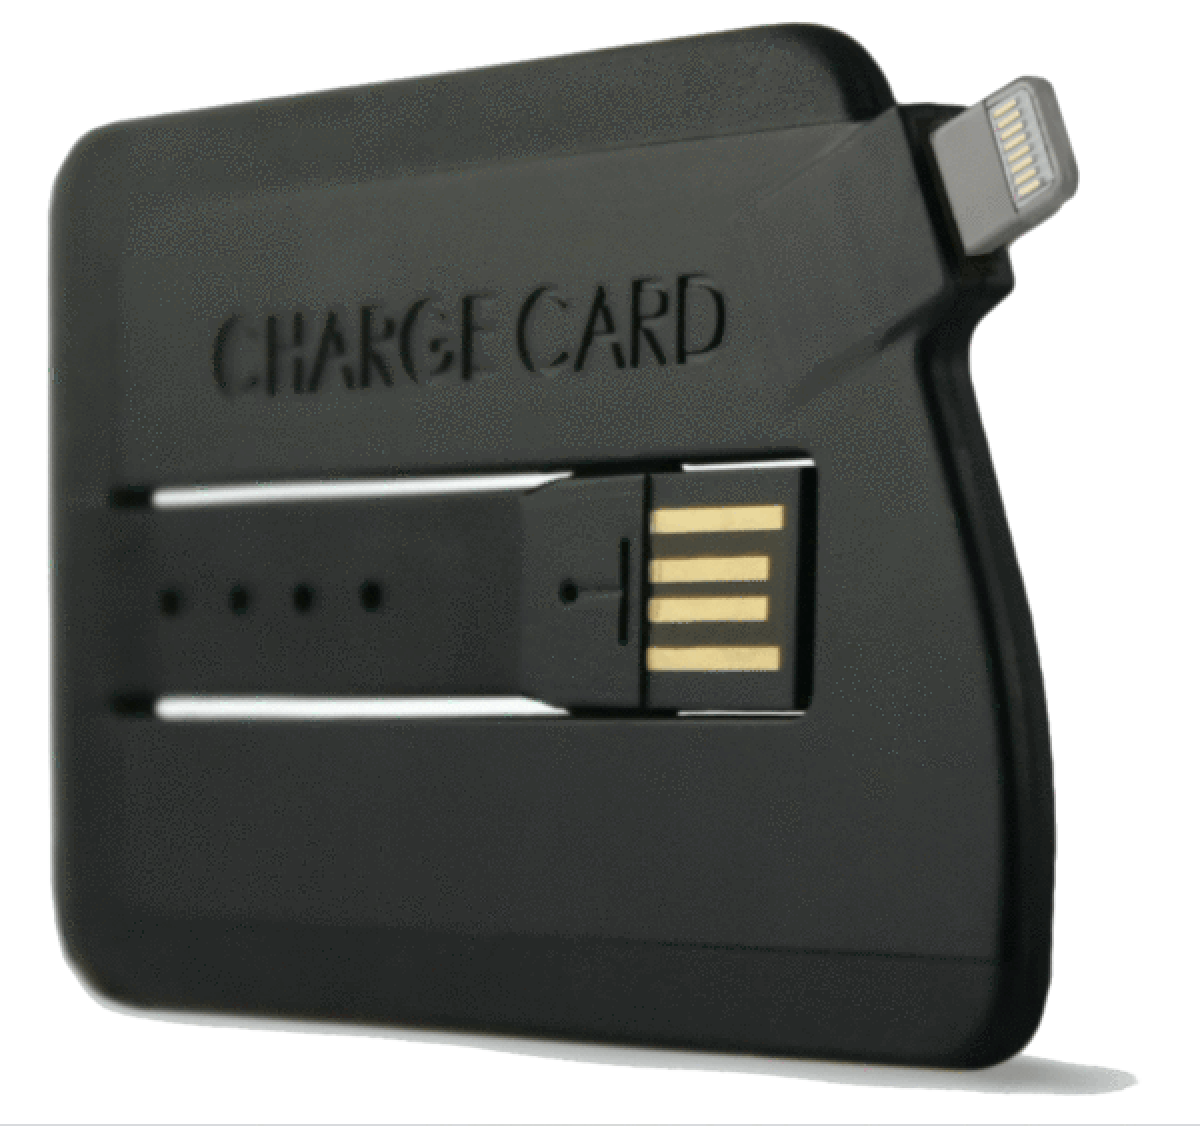 ChargeCard iPhone 5 Charger Fits in a Wallet - Mac Rumors